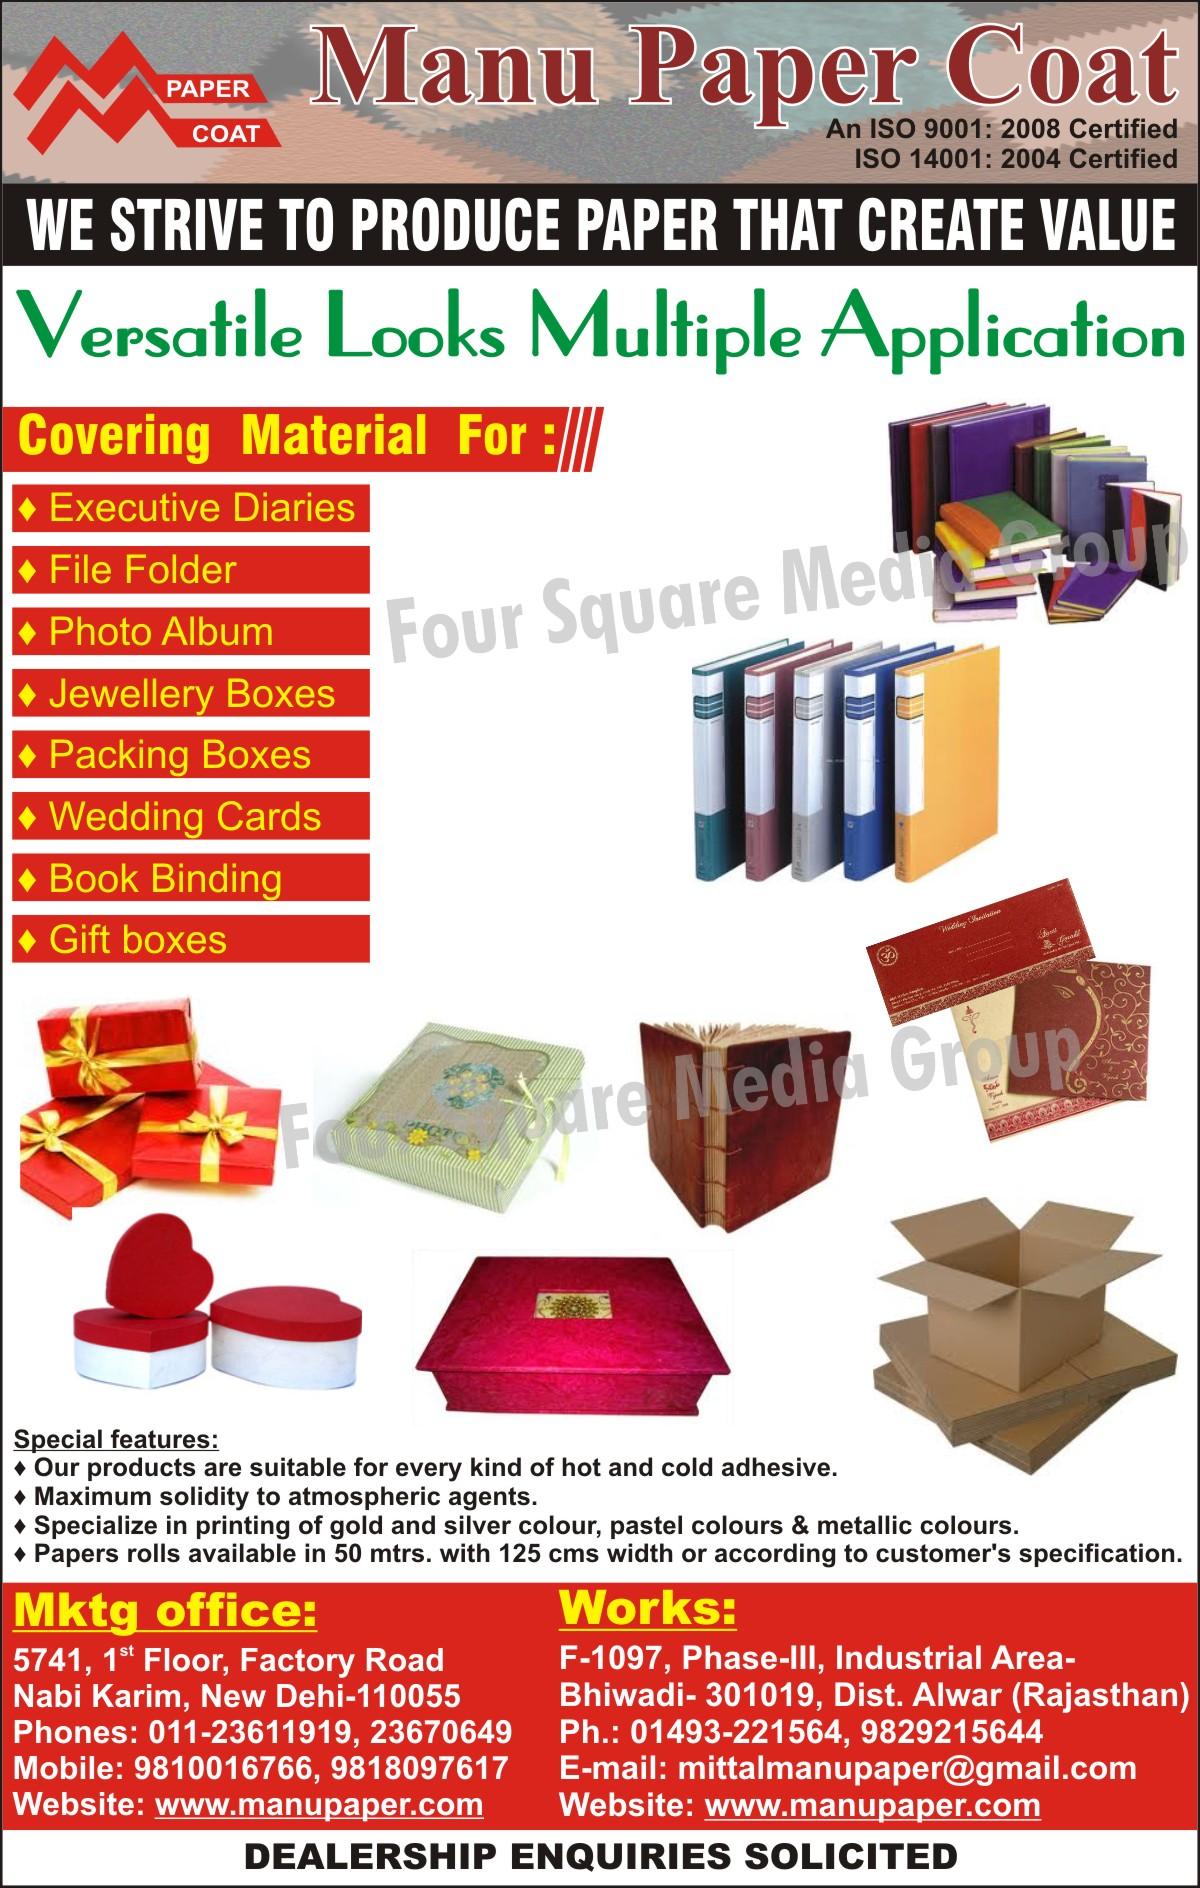 PVC Paper, ExecutBox Covering Materialive Diary Covering Material, File Folder CoveriBox Covering Materialng Material, Photo Album Covering Material, Jewellery Box Covering Material, Packing Box Covering Material, Wedding Cards Covering Material, Book Binding Covering Material, Gift Box Covering Material